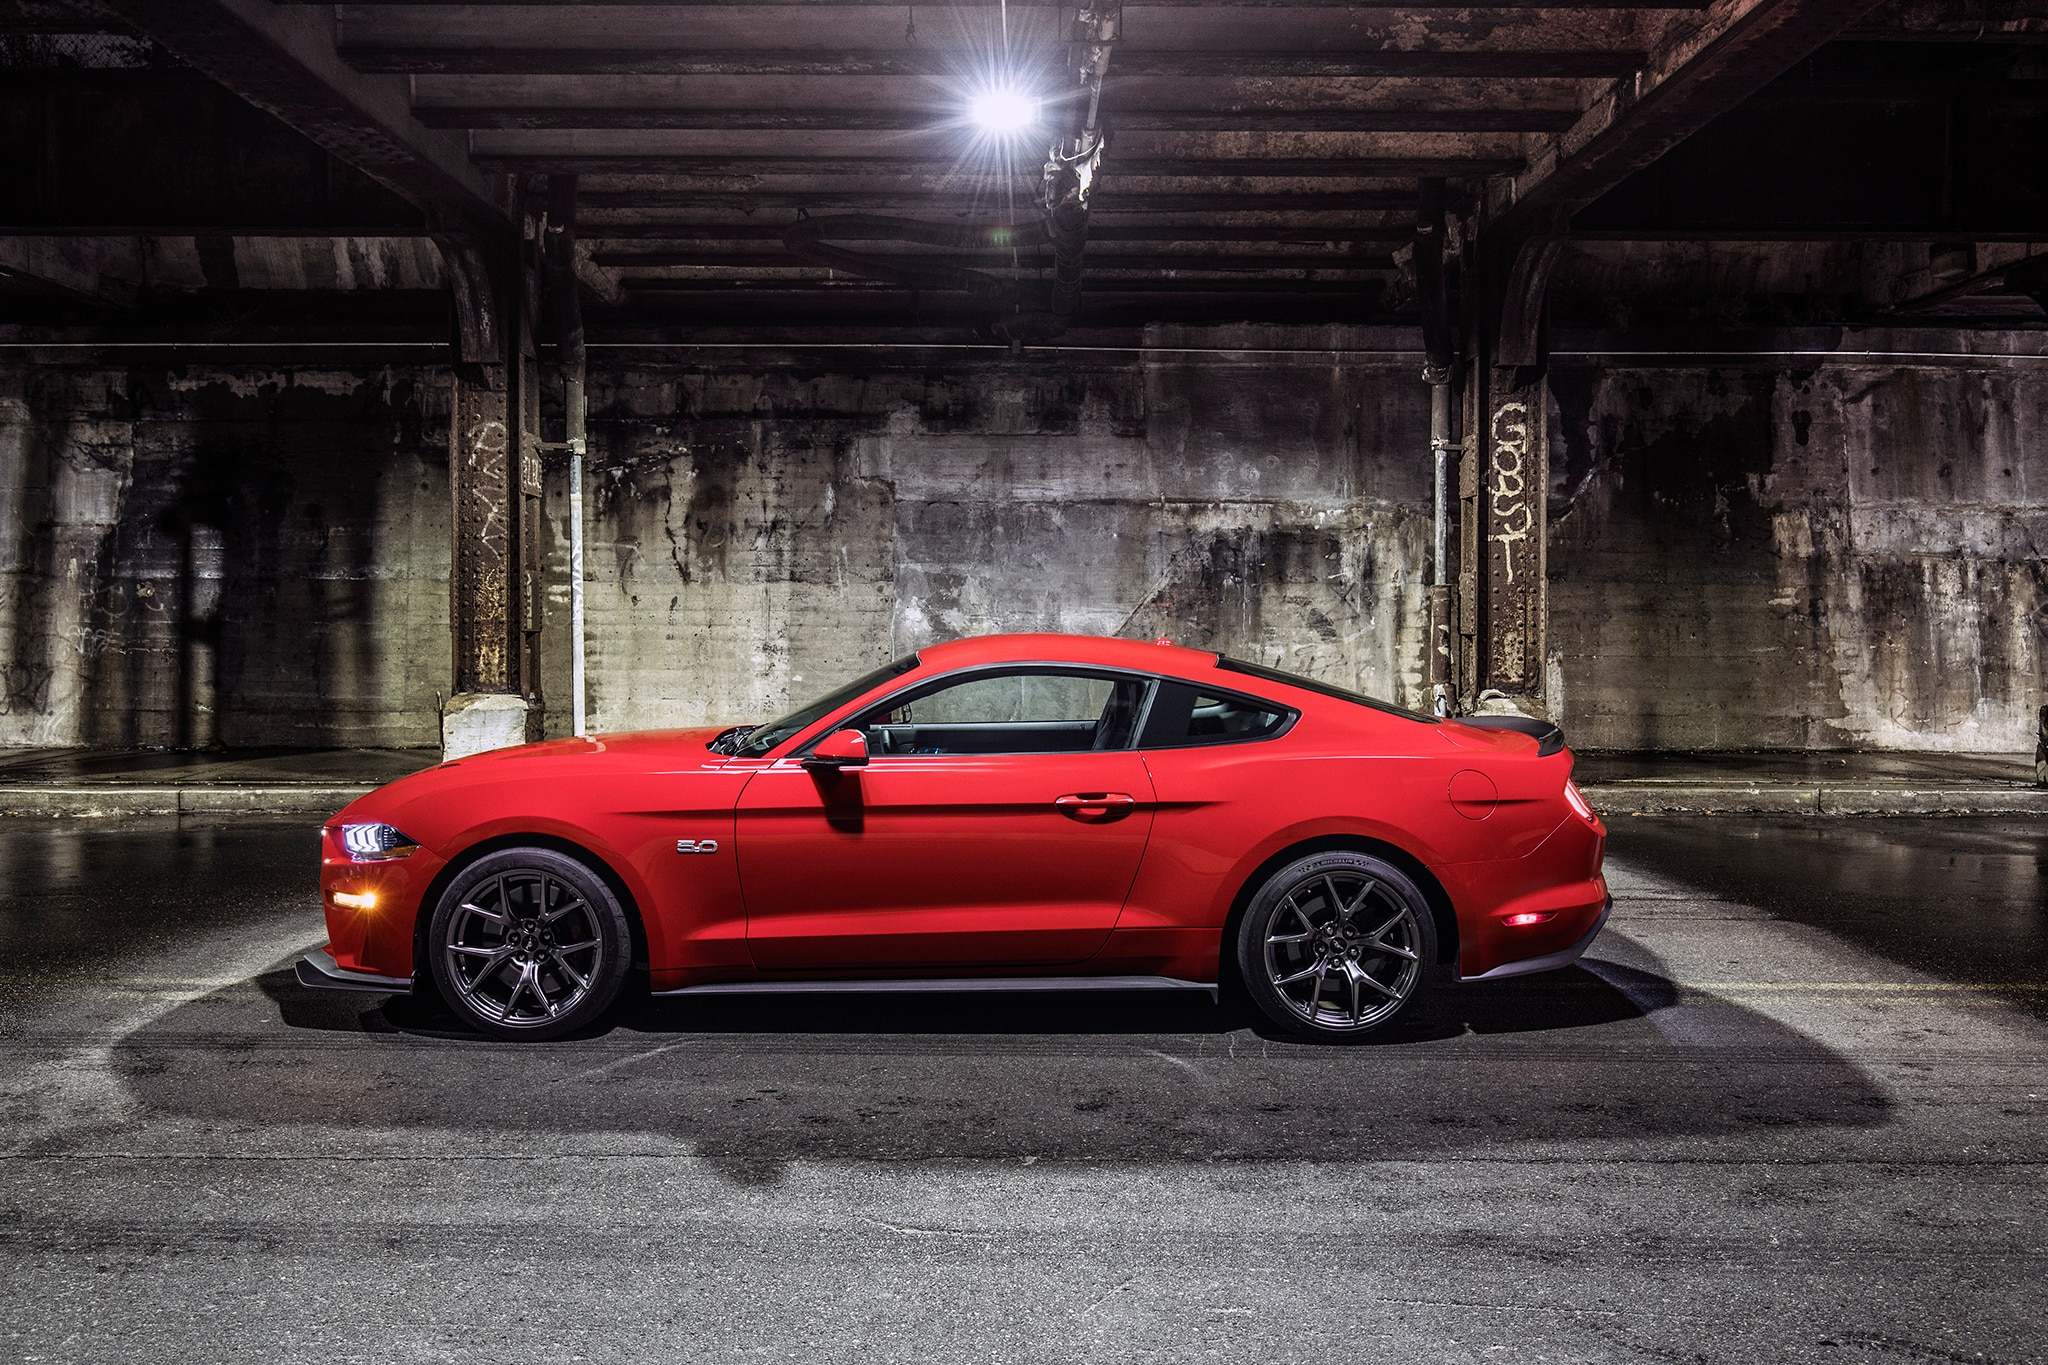 2018 Ford Mustang Performance Pack Level 2 Side Profile